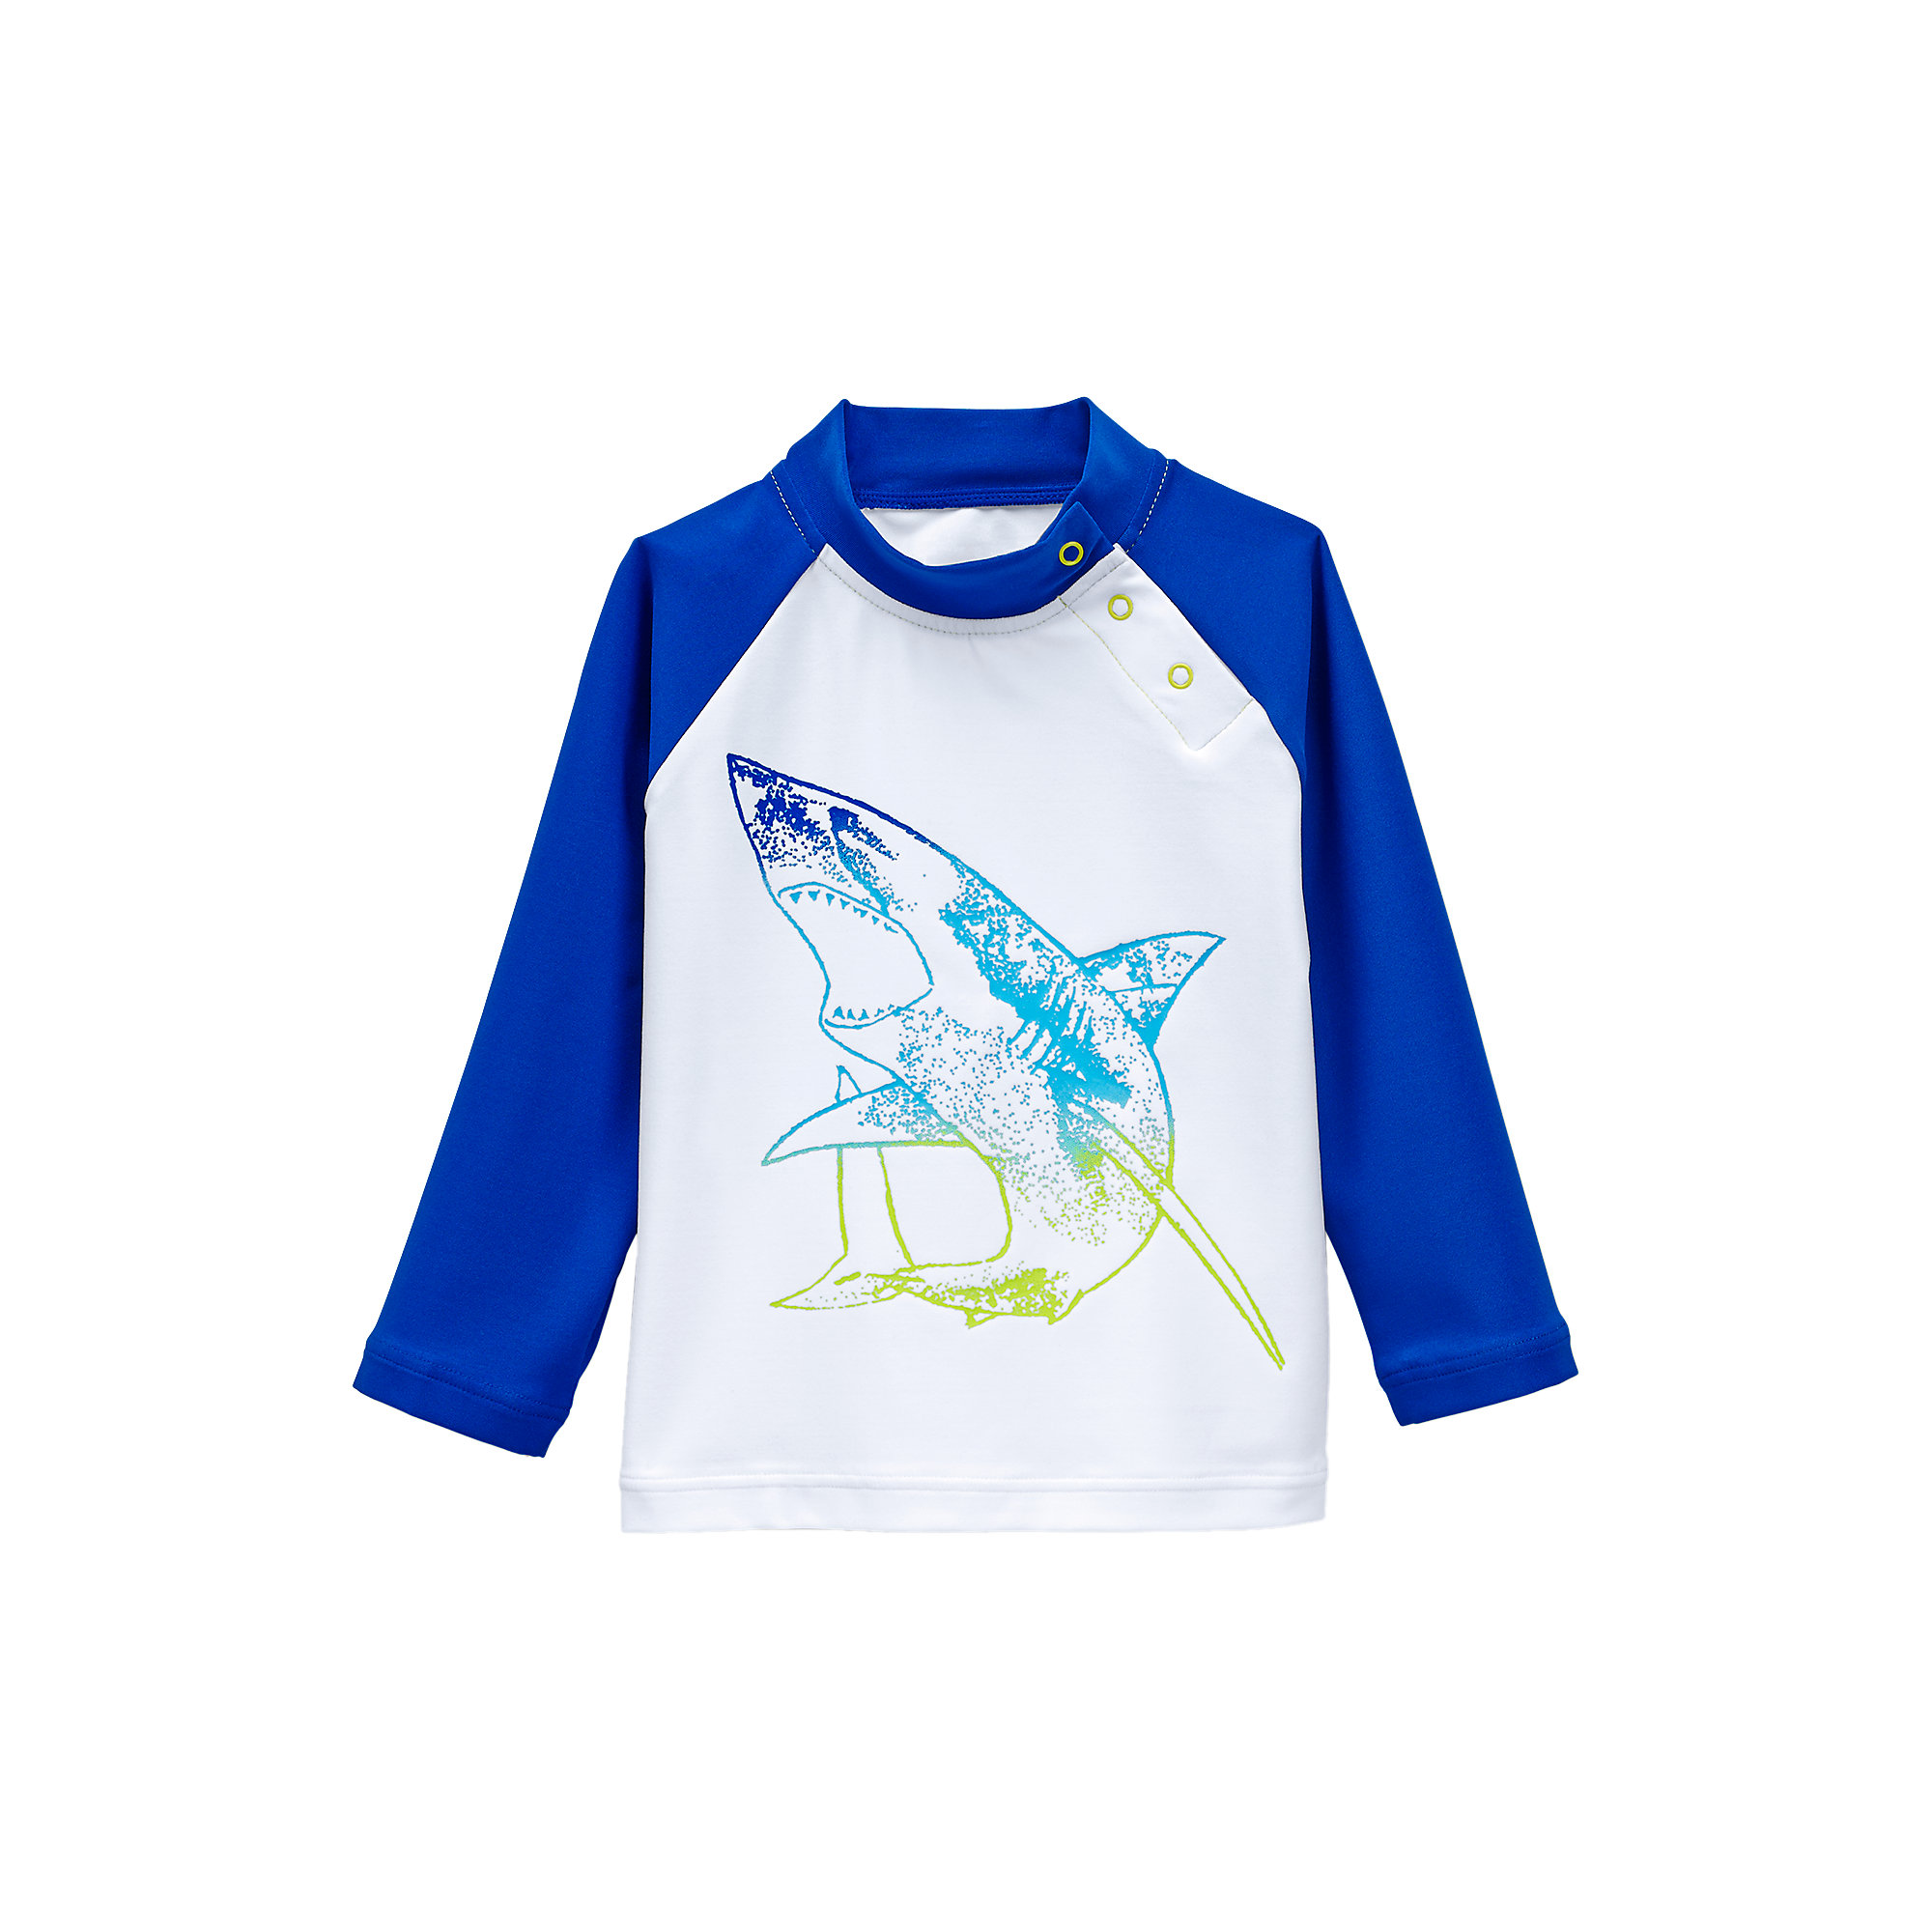 Coolibar upf 50 baby rash guard ebay for Baby rash guard shirt